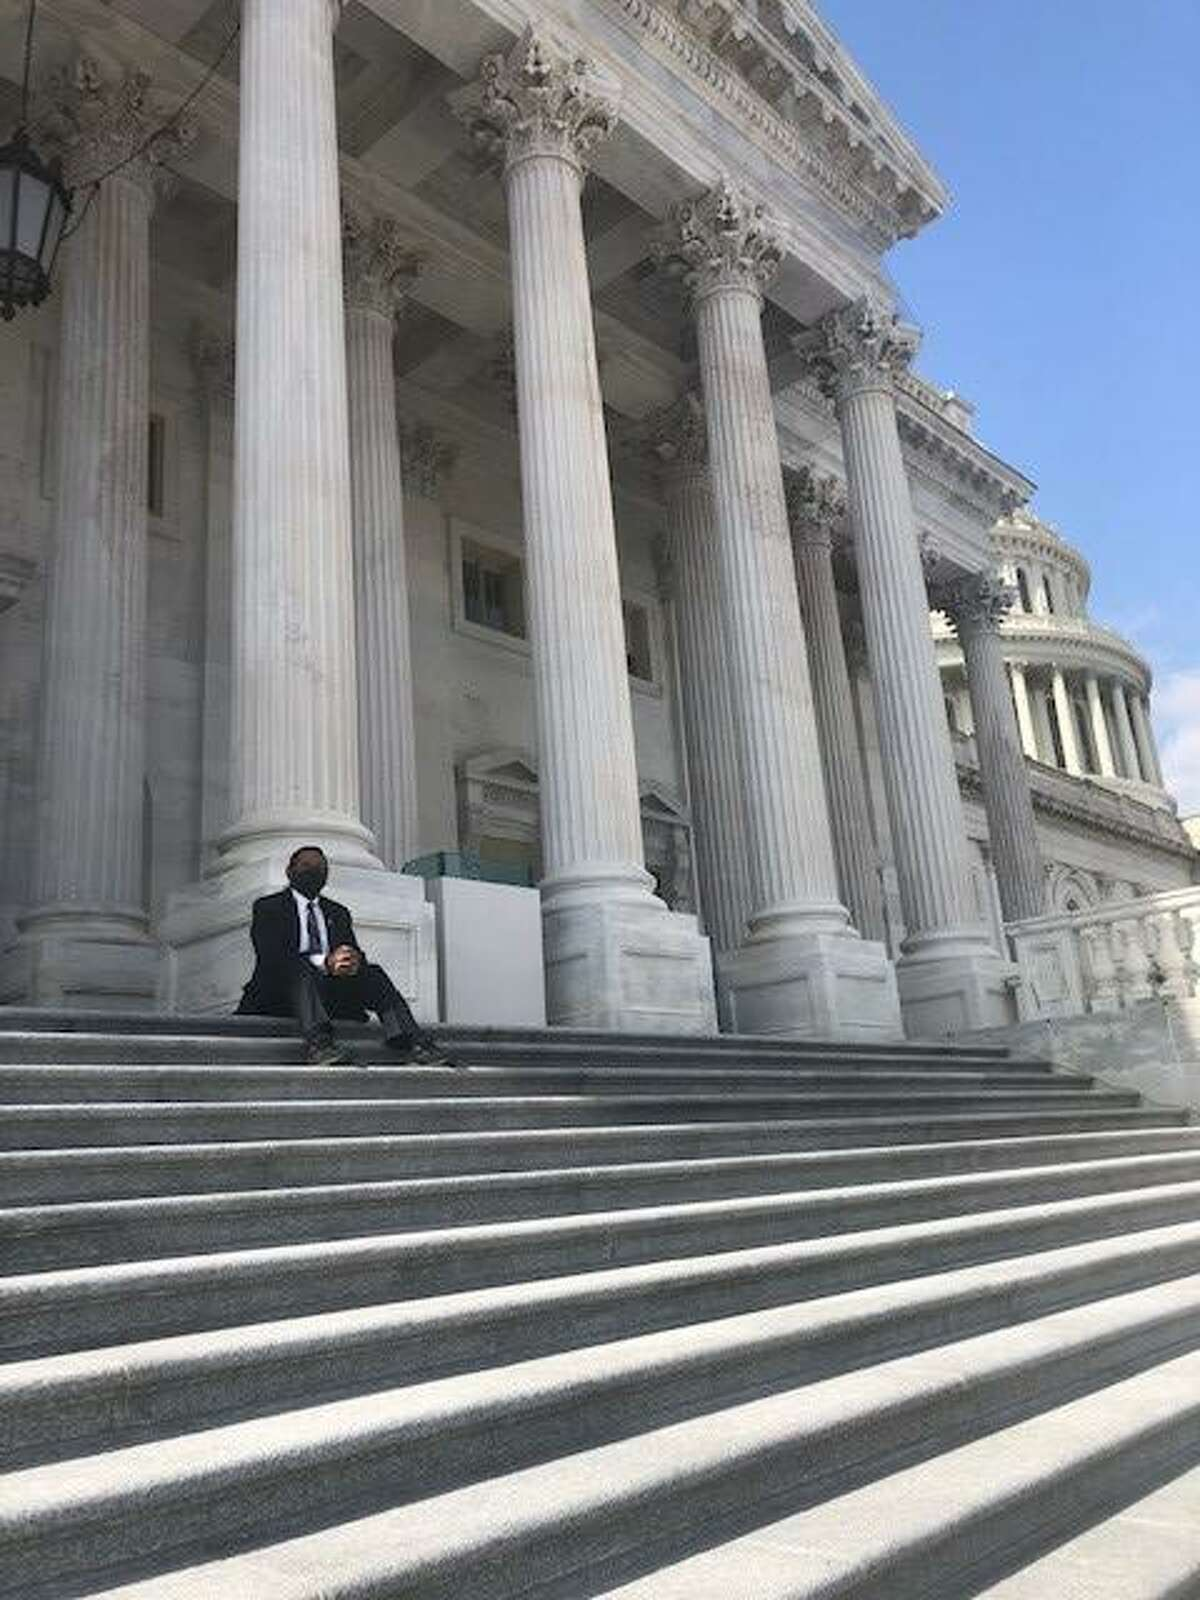 U.S. Rep. Al Green sits on the steps of the Capitol building in Washington, D.C. on Thursday, March 4, 2021.